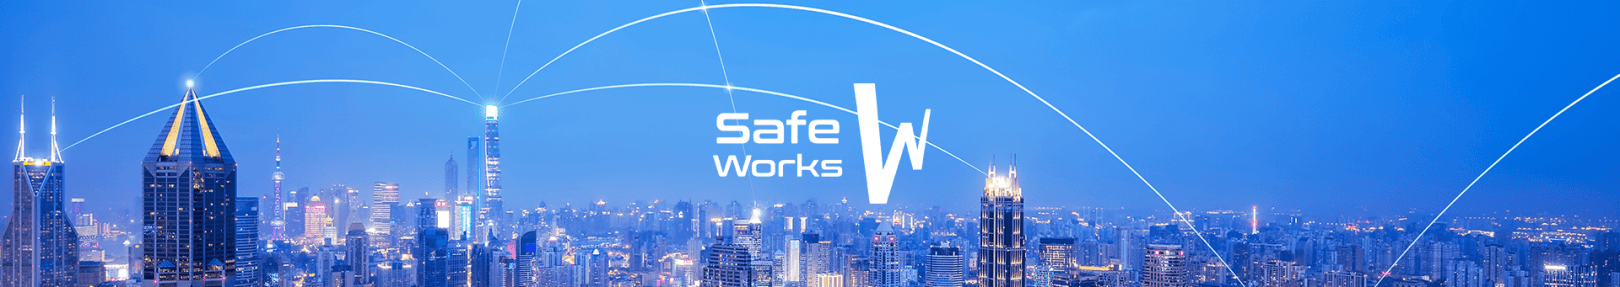 Safe Works by OSMOS